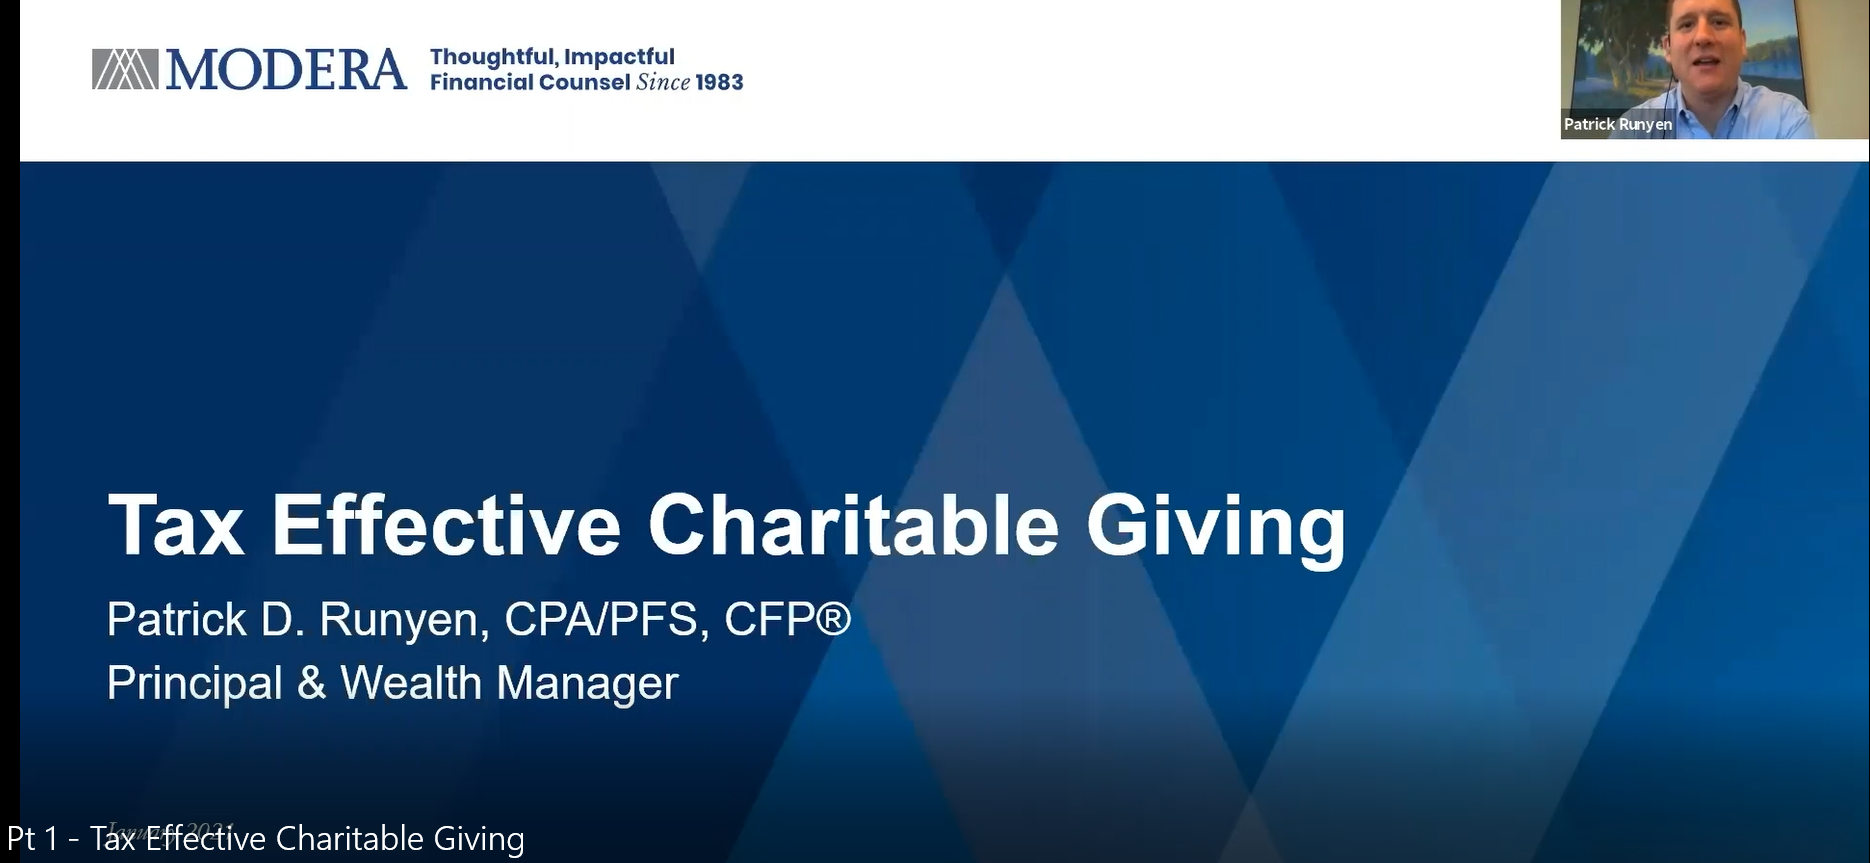 Tax Effective Charitable Giving